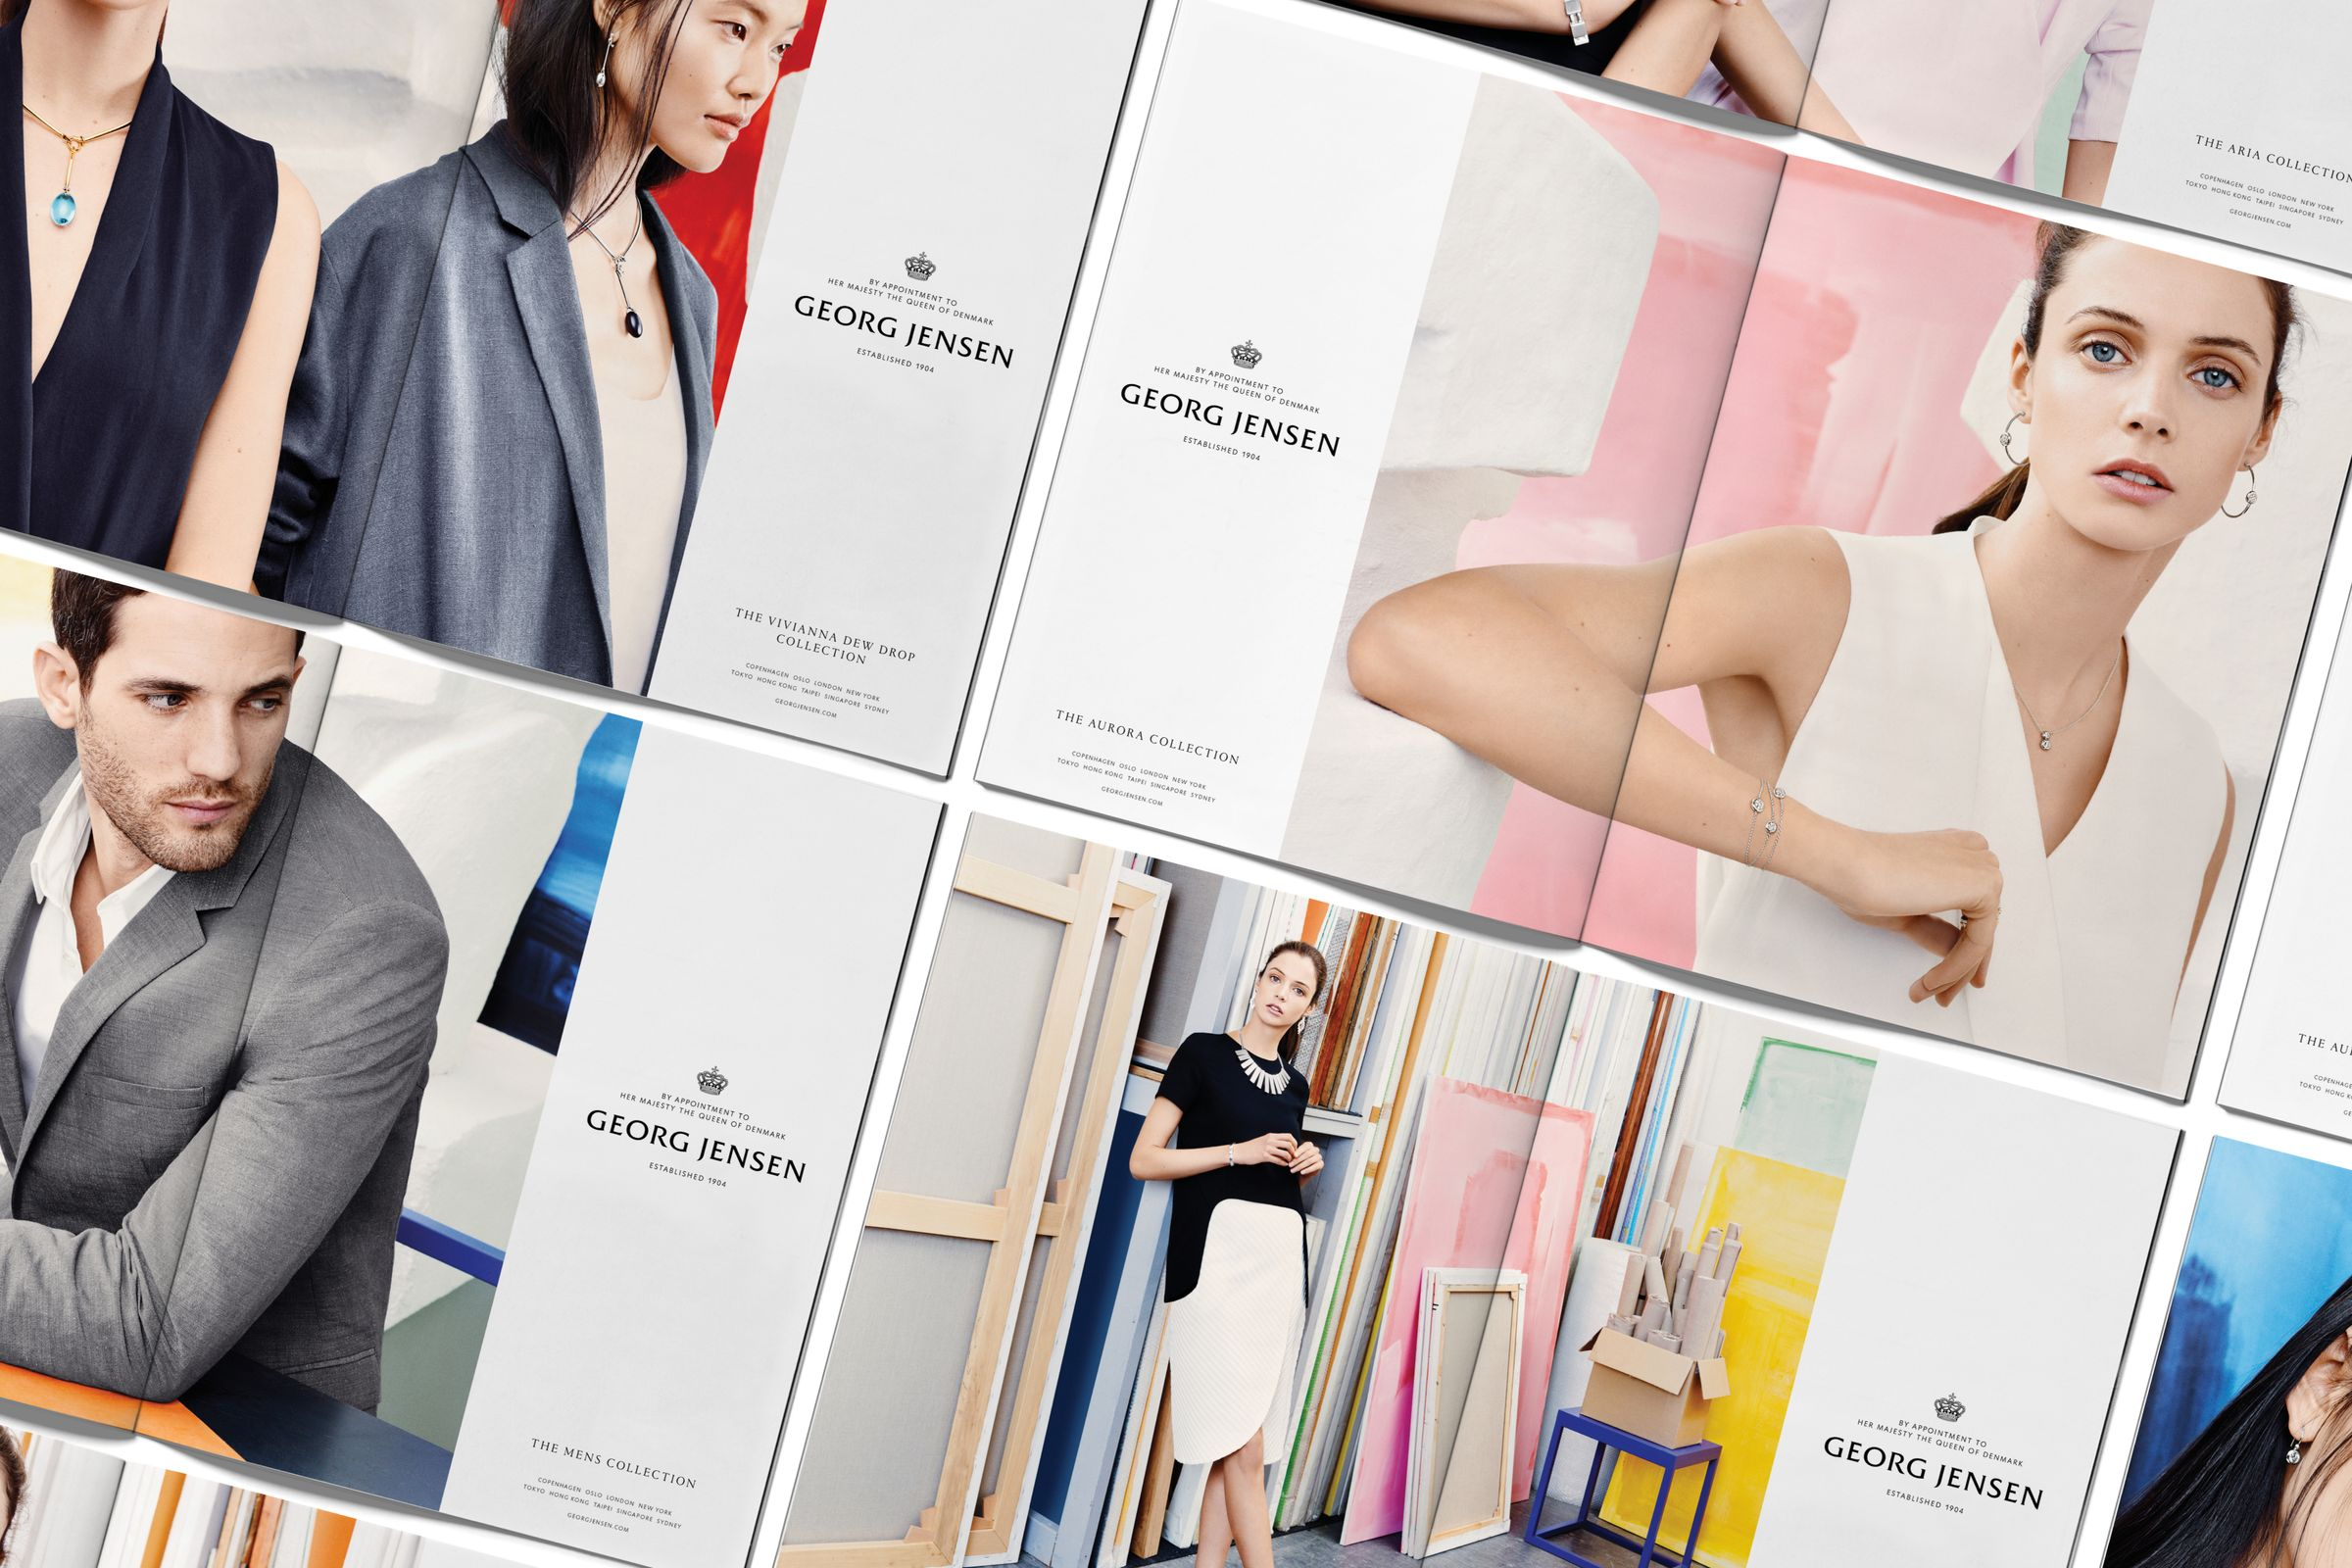 Georg Jensen campaign spreads photographed by Hasse Nielsen